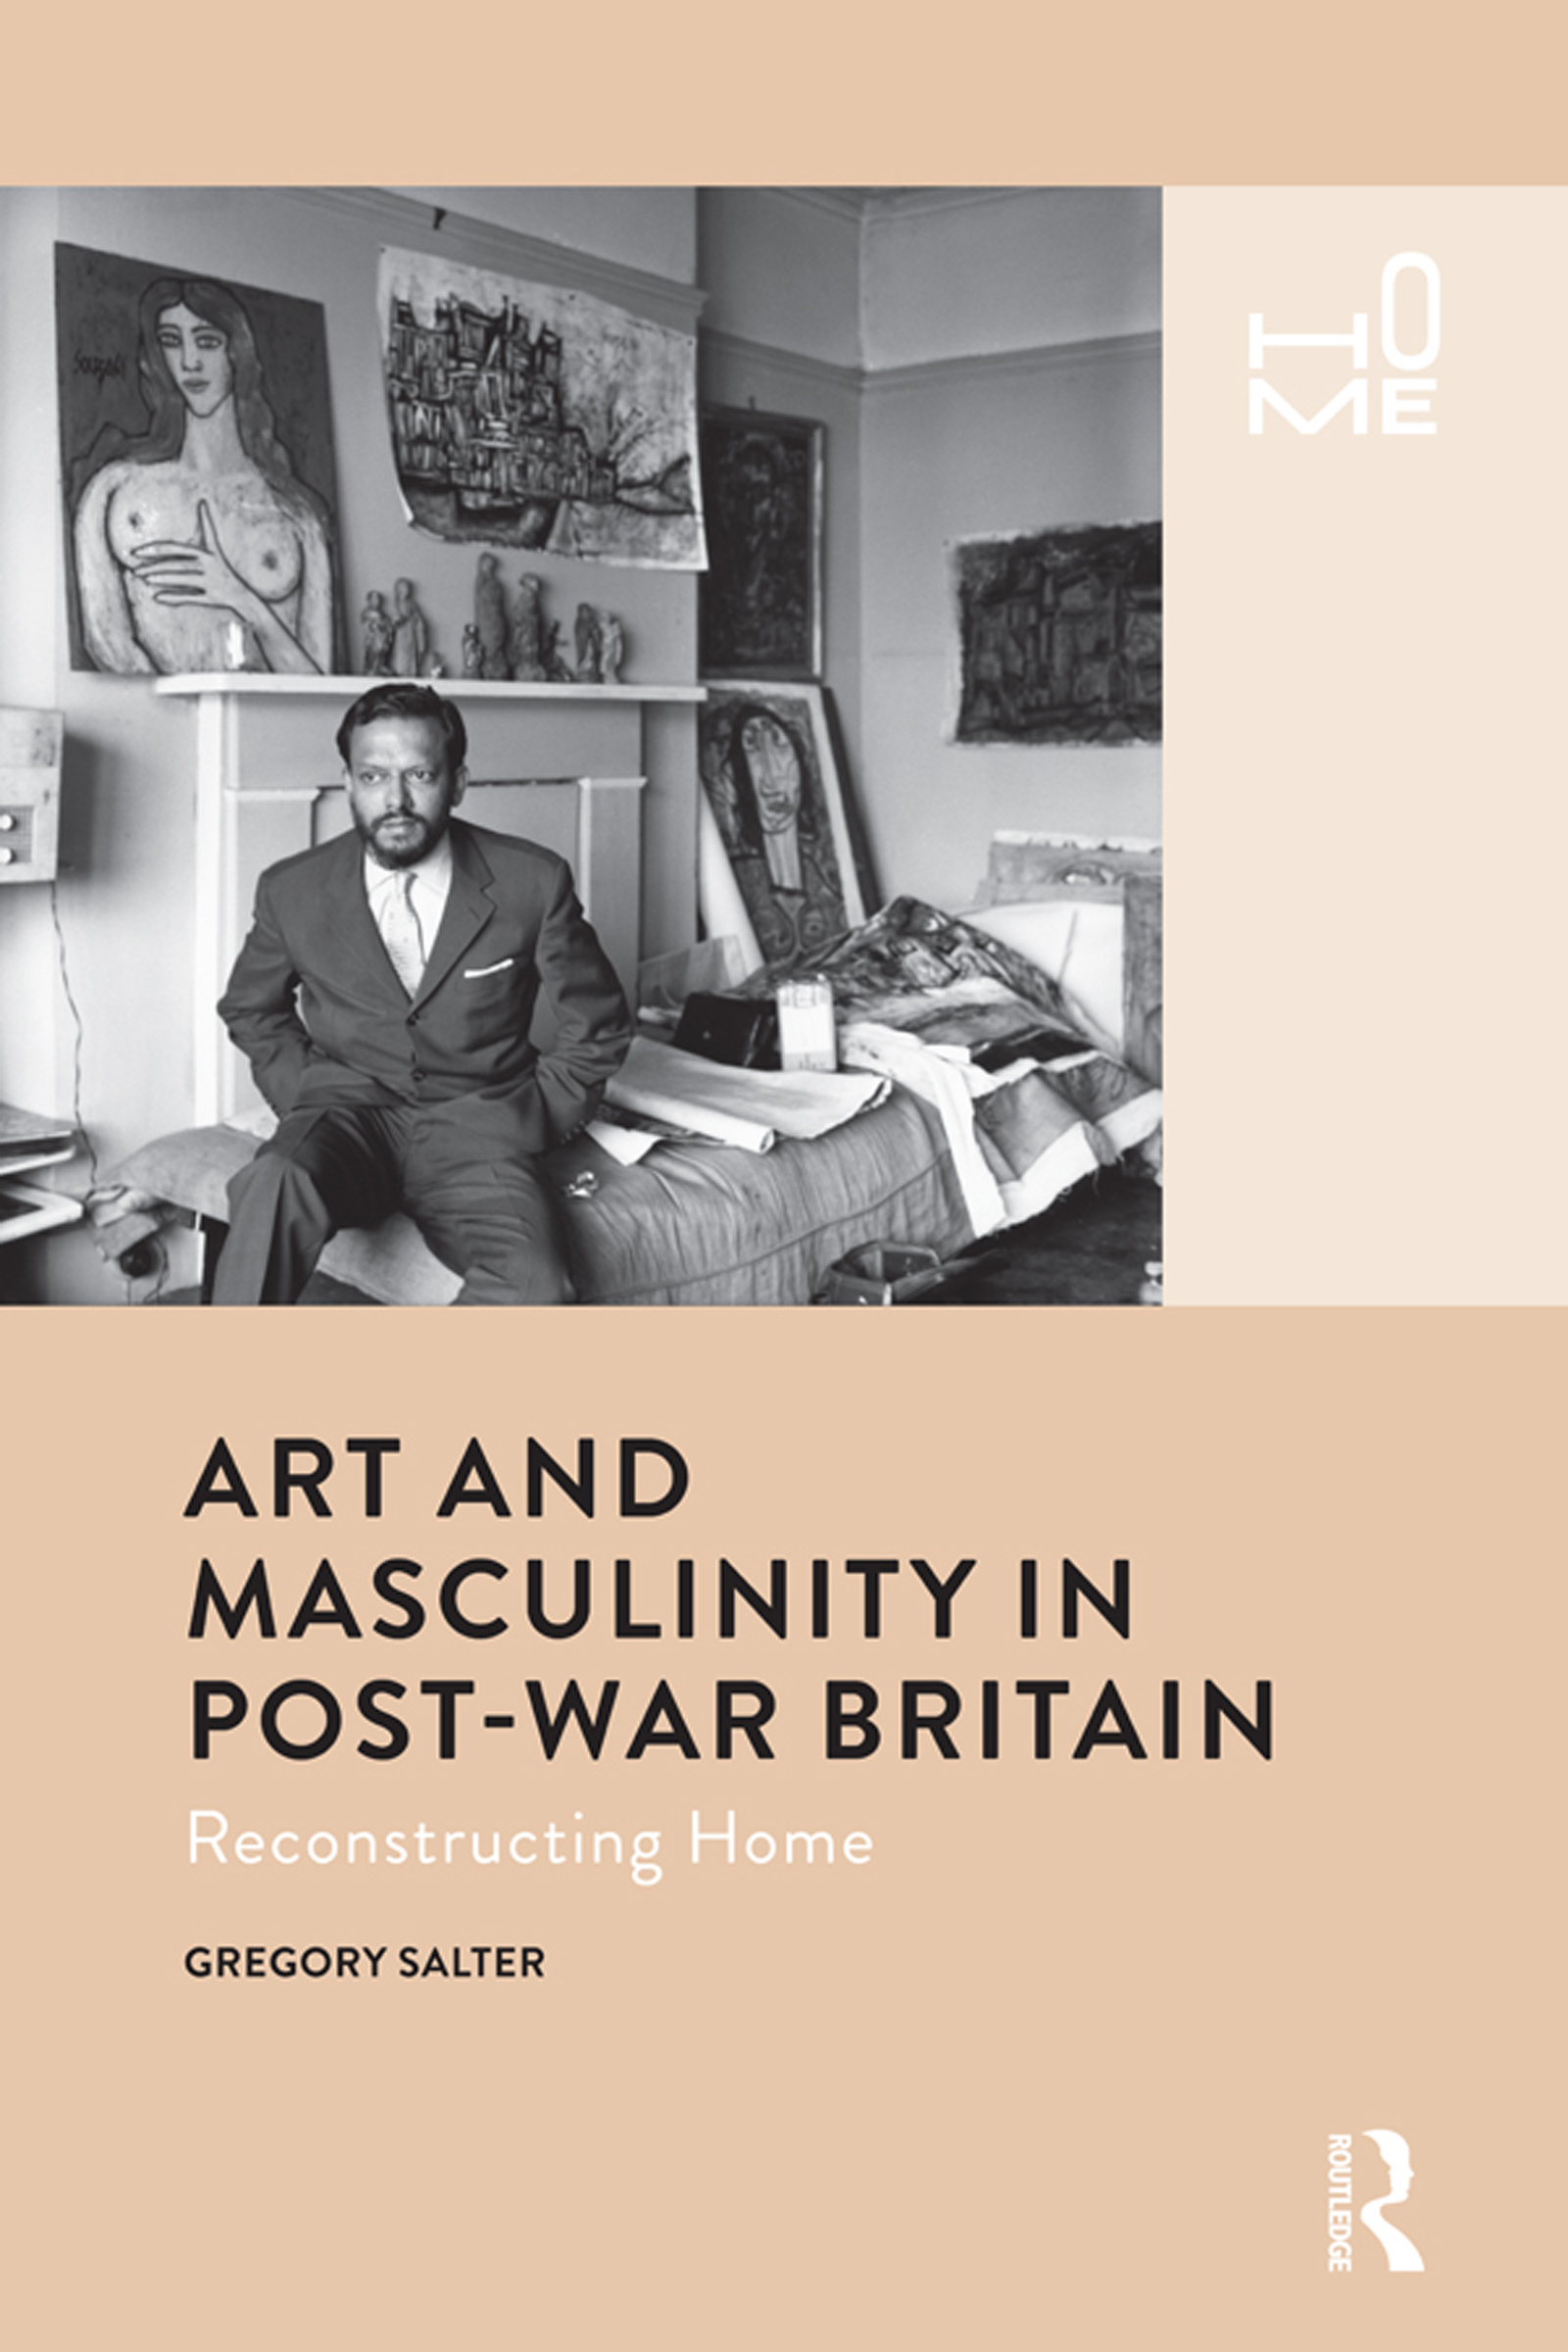 Art and Masculinity in Post-War Britain